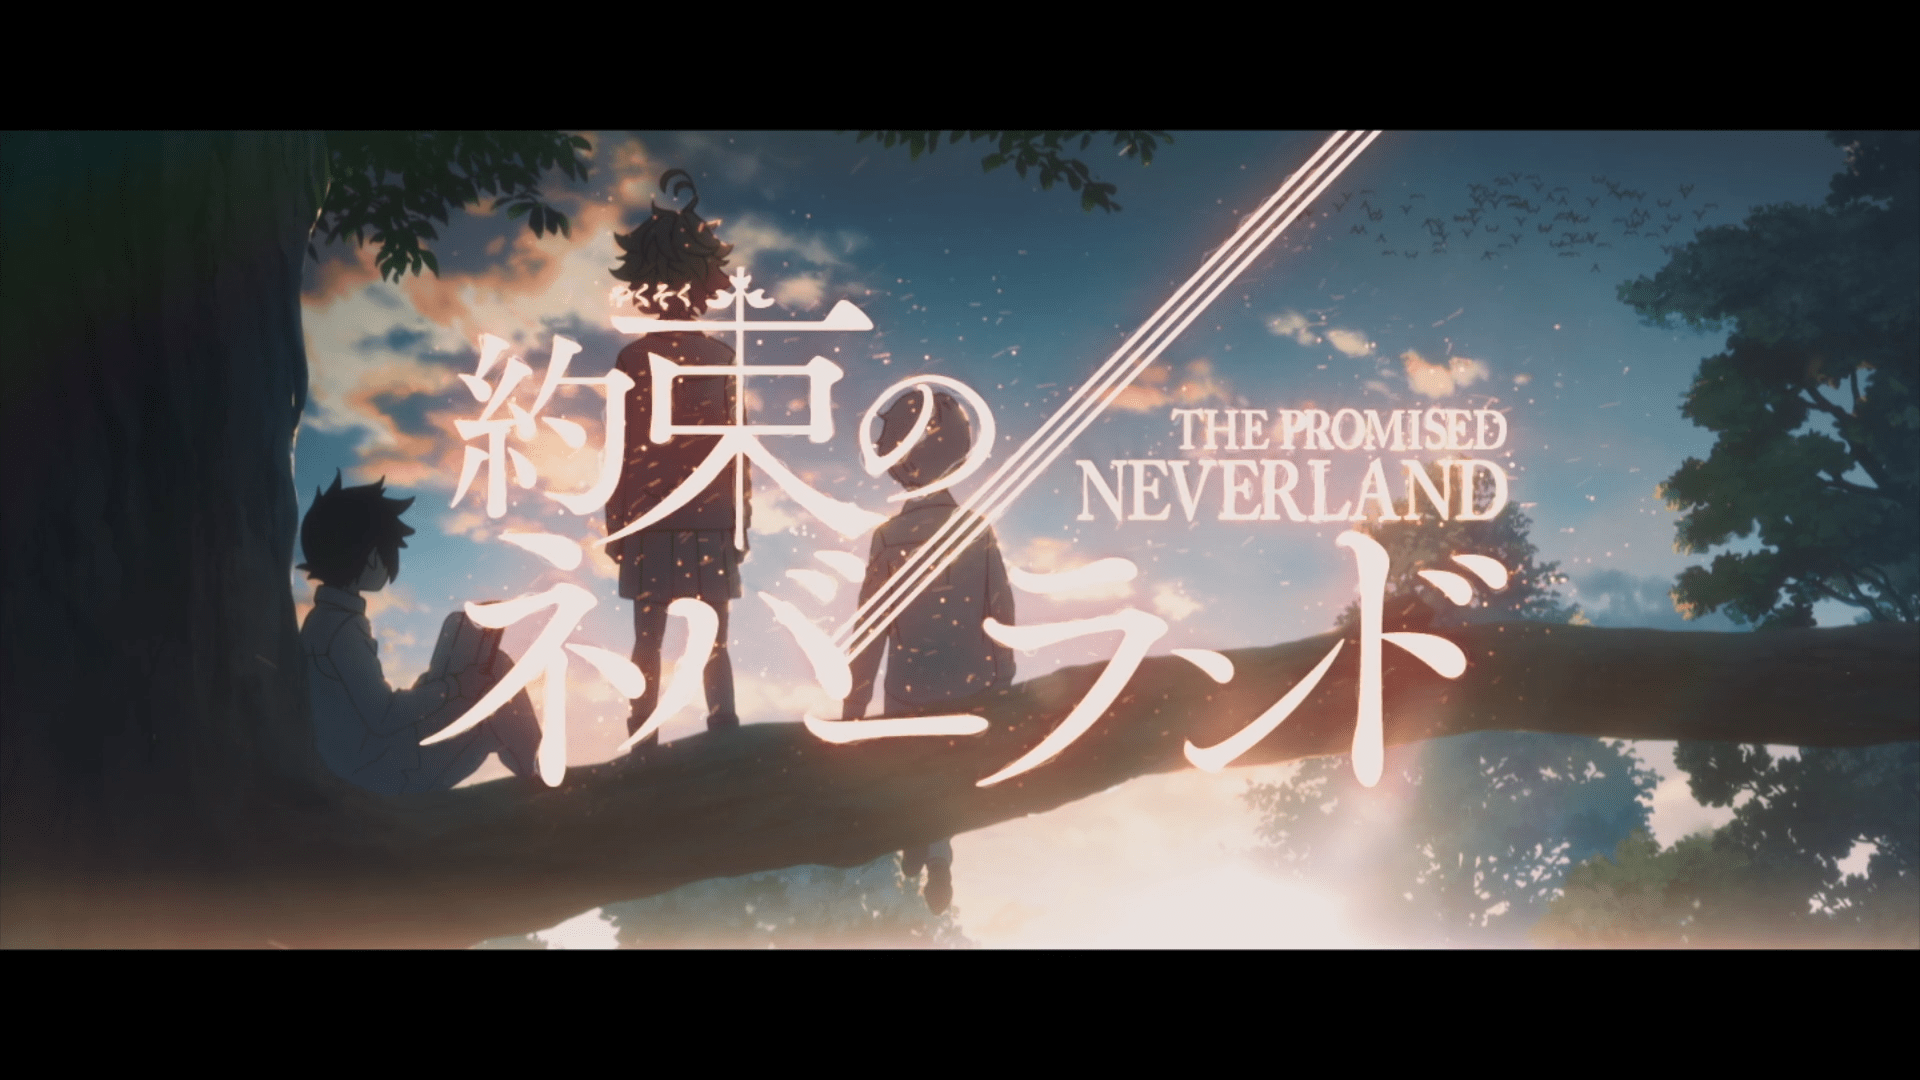 The Promised Neverland - Episode 1 (Review) - The Geekly Grind